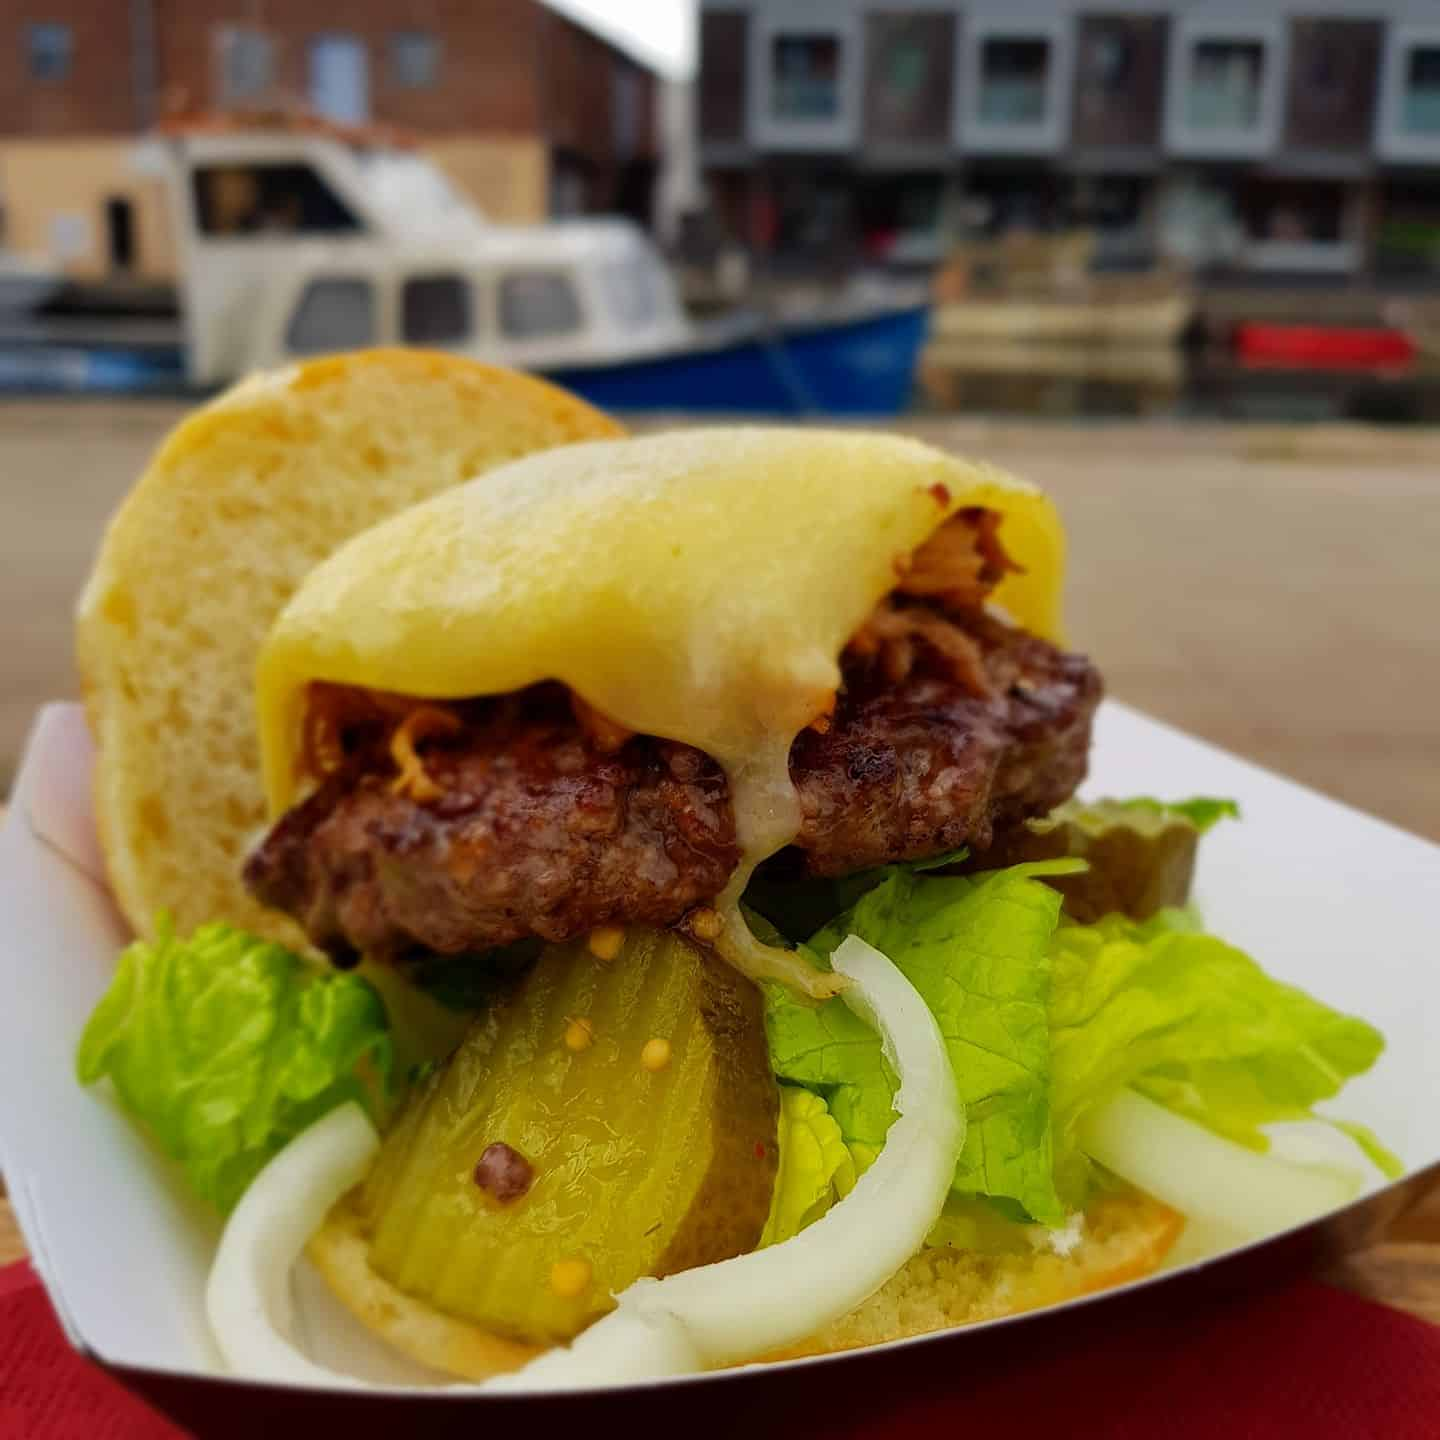 Grilled Burger With Cheese and Pickle